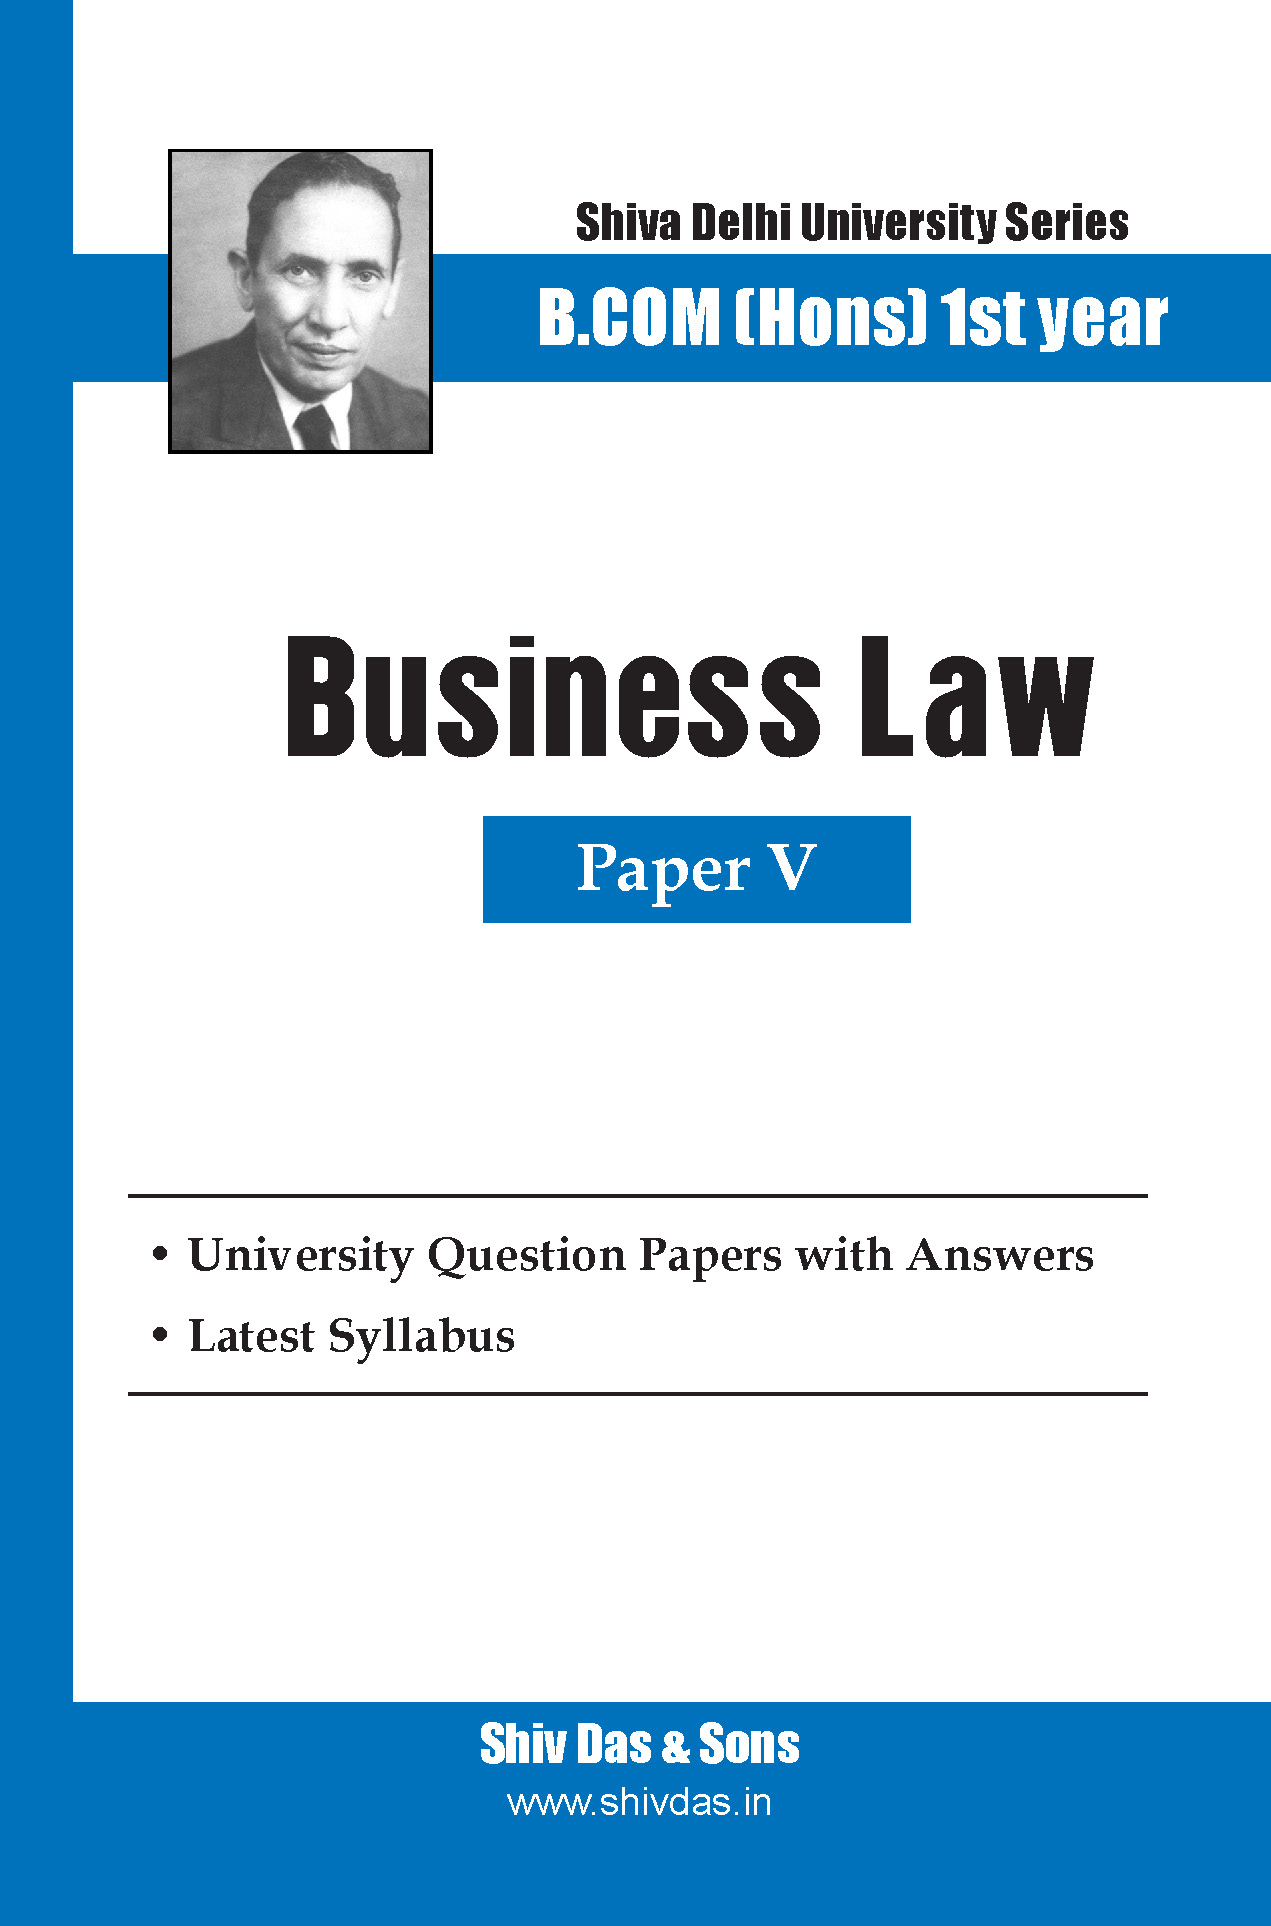 B.Com Hons-SOL/External-1st Year-Business law-Shiv Das-Delhi University Series